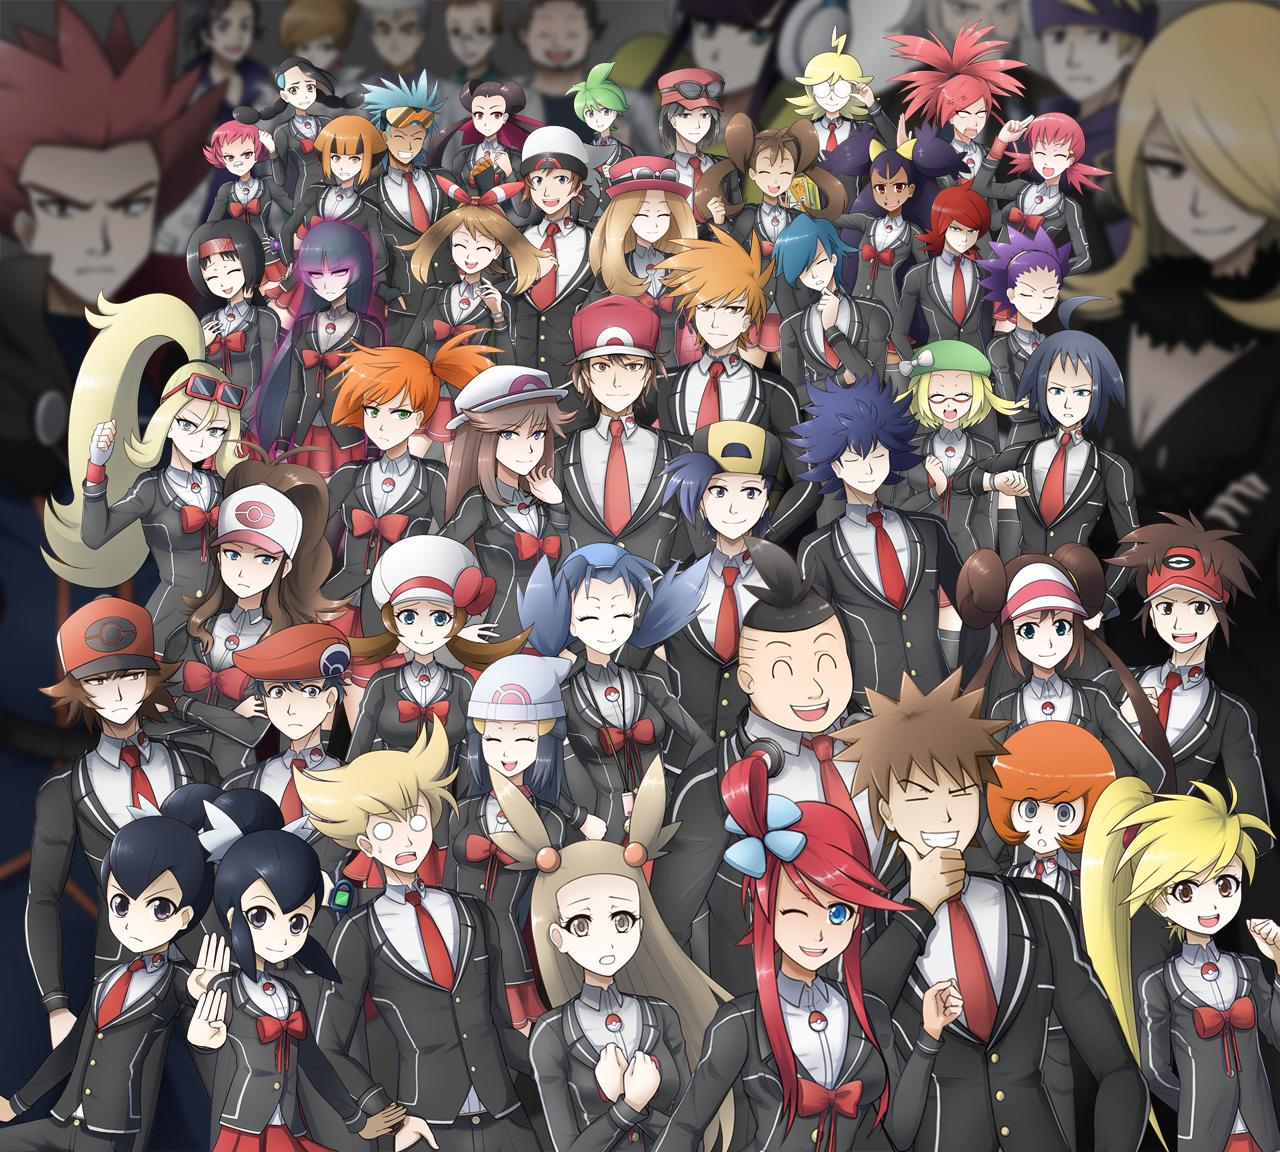 Such lovable artworks and so many people... and this isn't even the whole group.